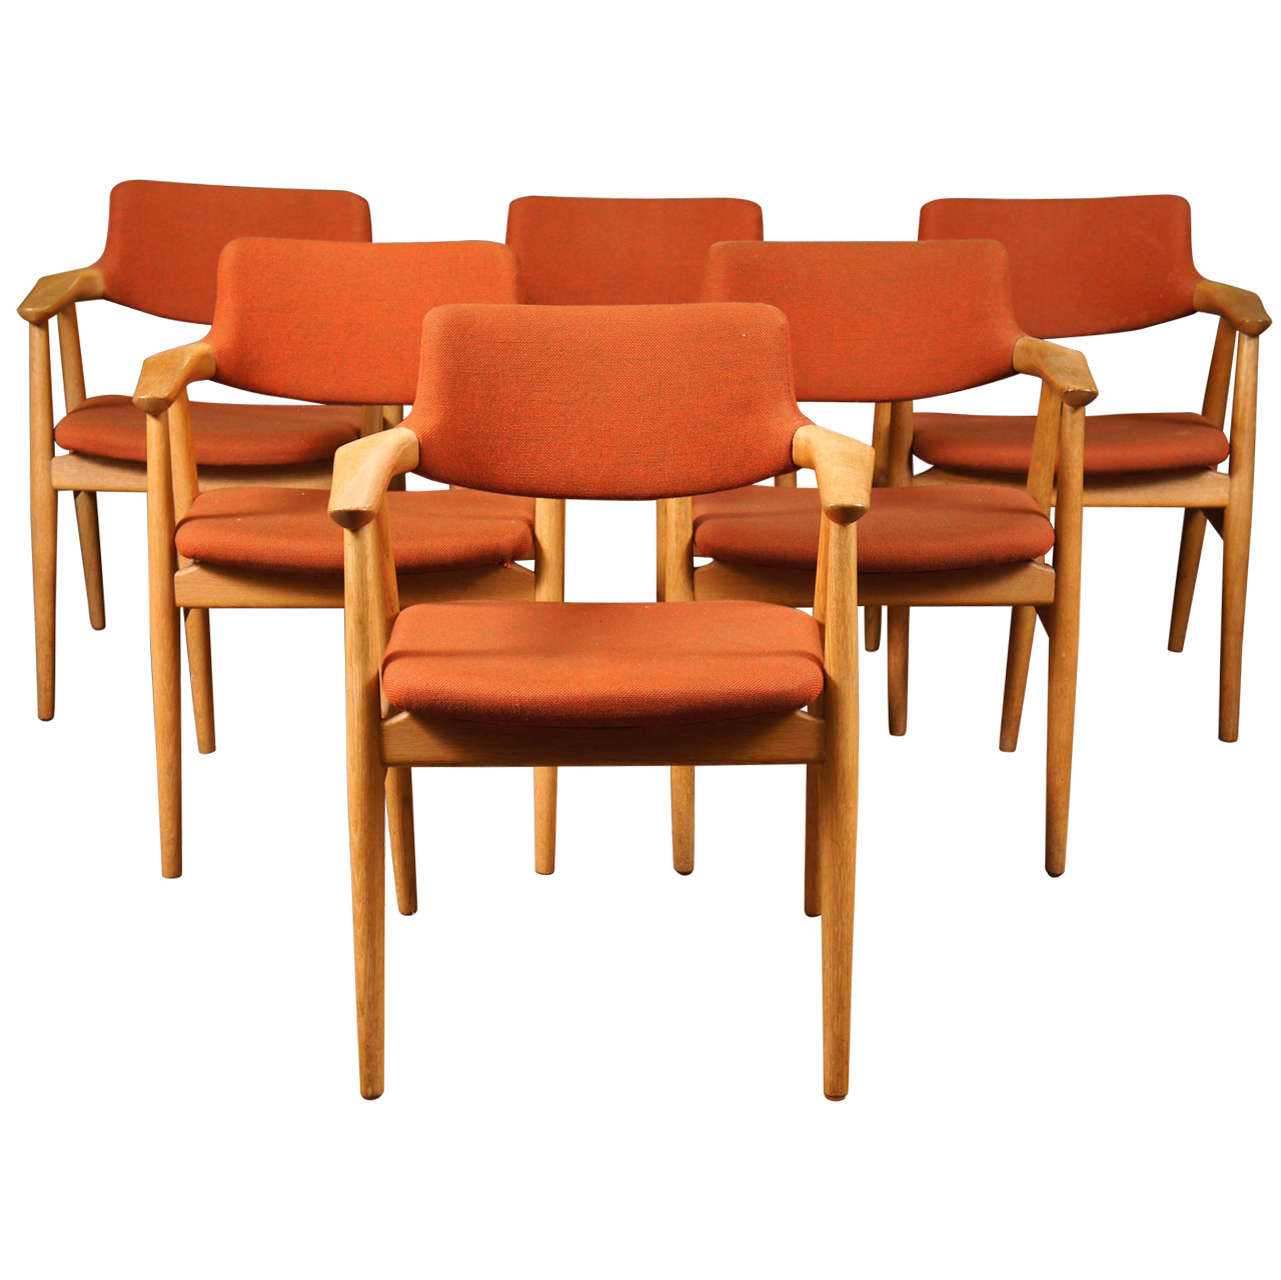 danish dining chair eddie bauer multi stage high six modern chairs by erik kirkegaard at 1stdibs